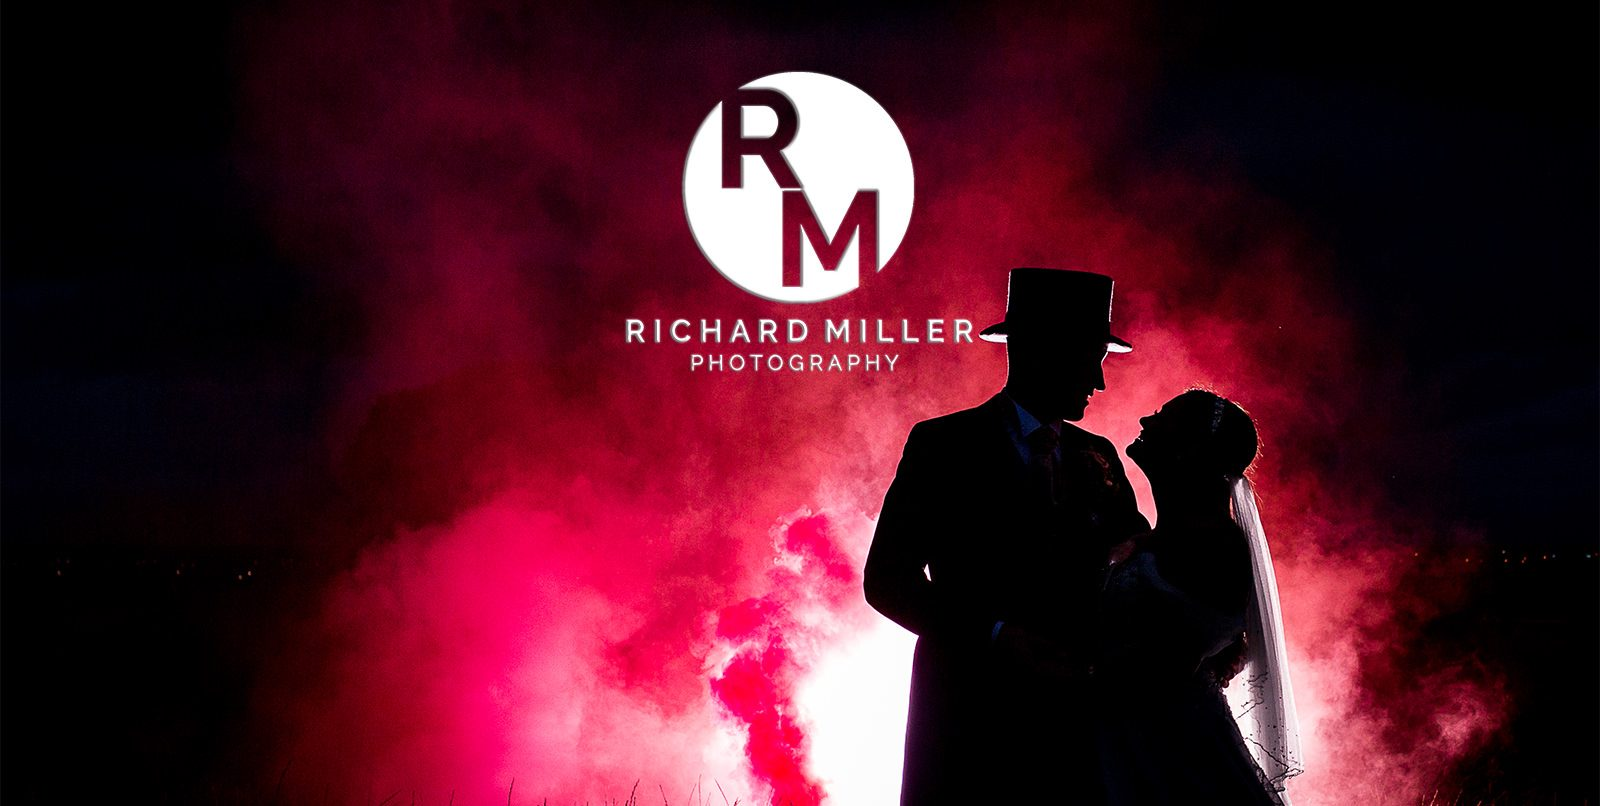 Richard Miller Photography